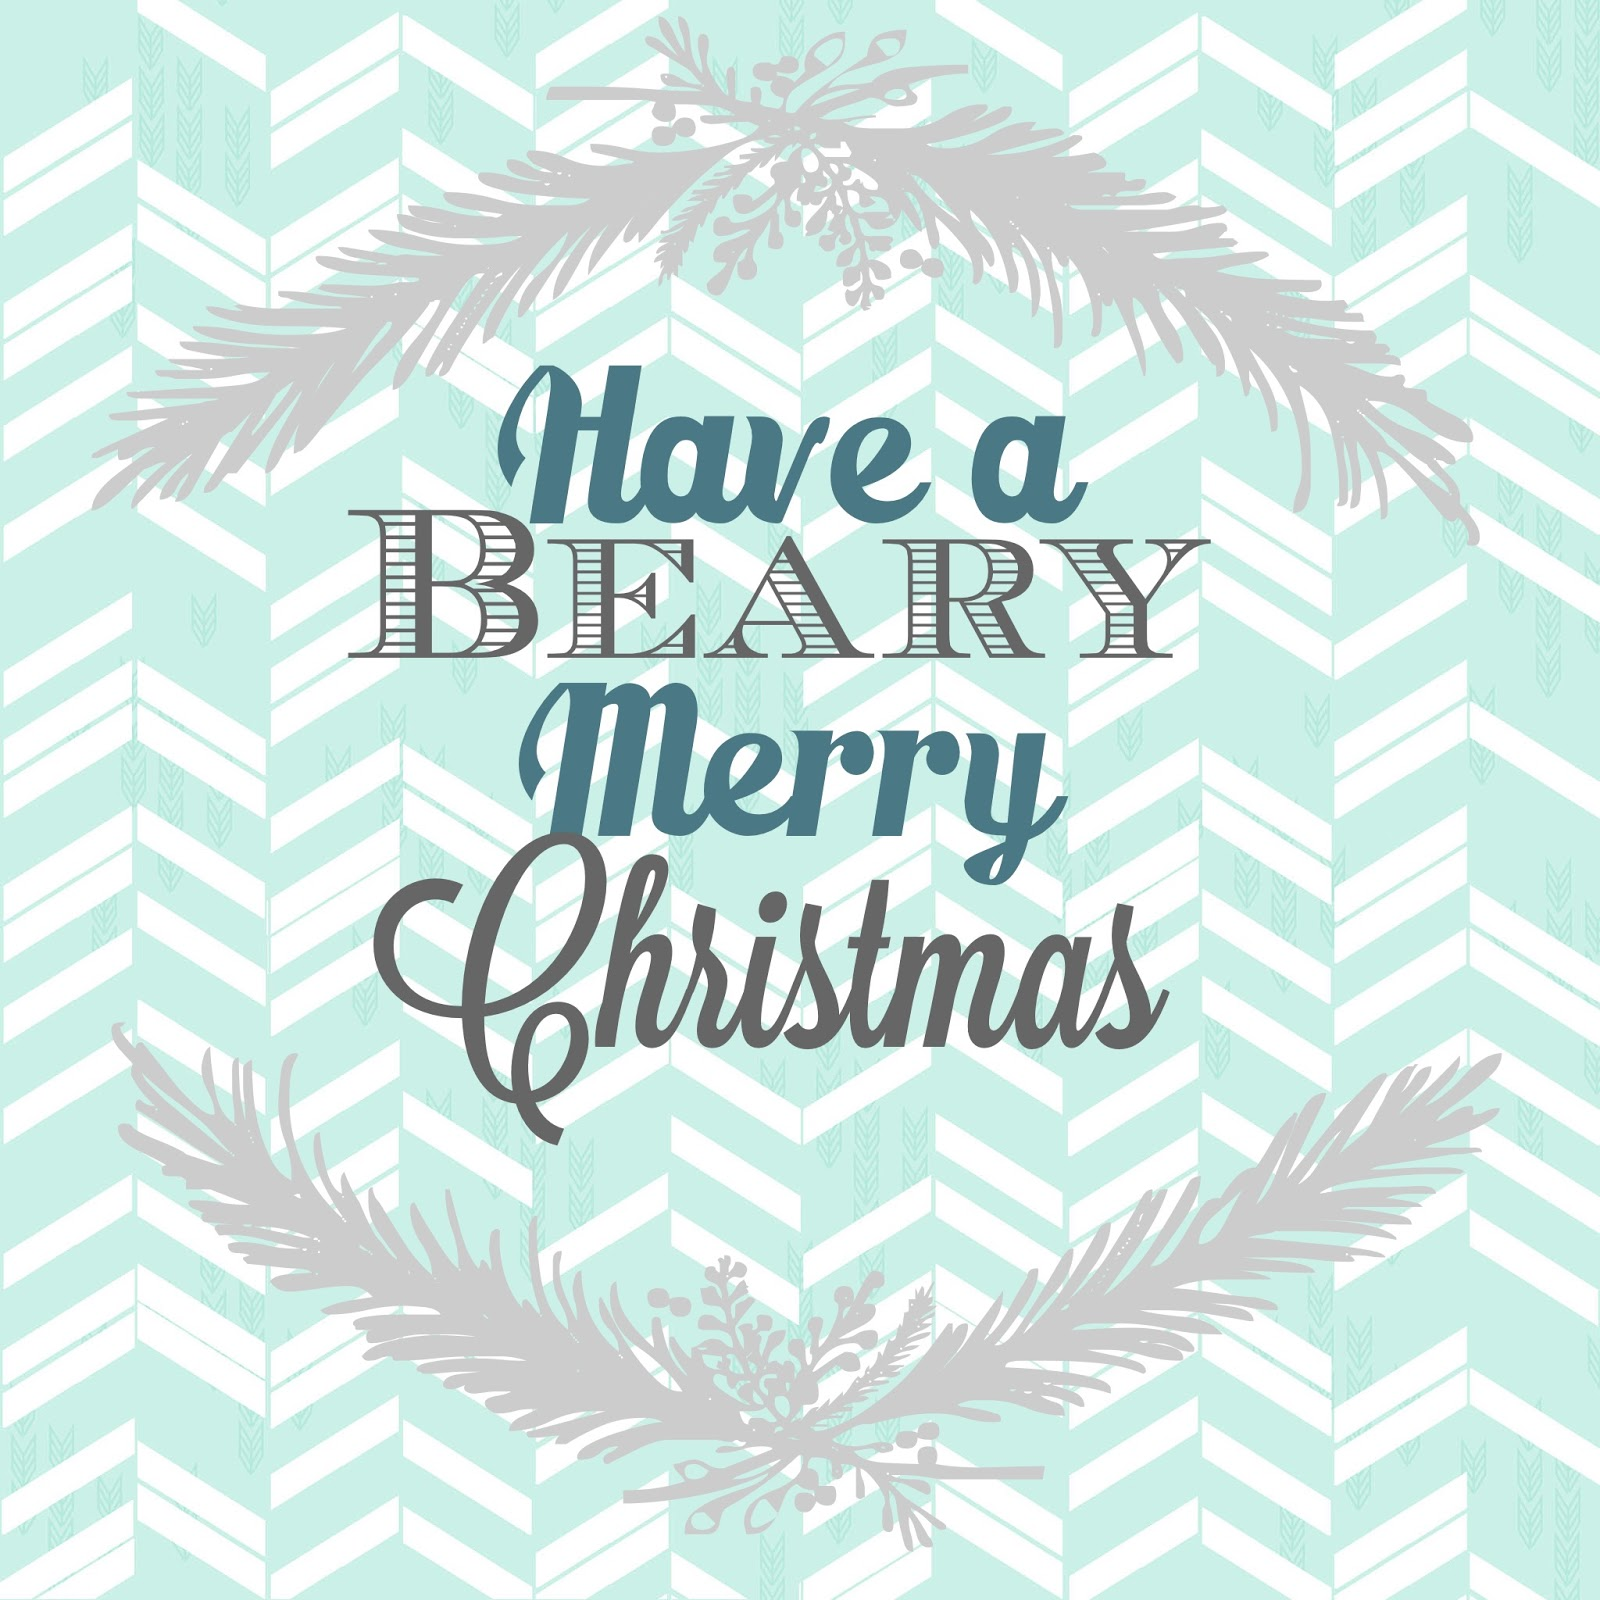 Have a Beary Merry Christmas Gift Idea with Honey Bear for Neighbor, Friend, and Teacher Gifts